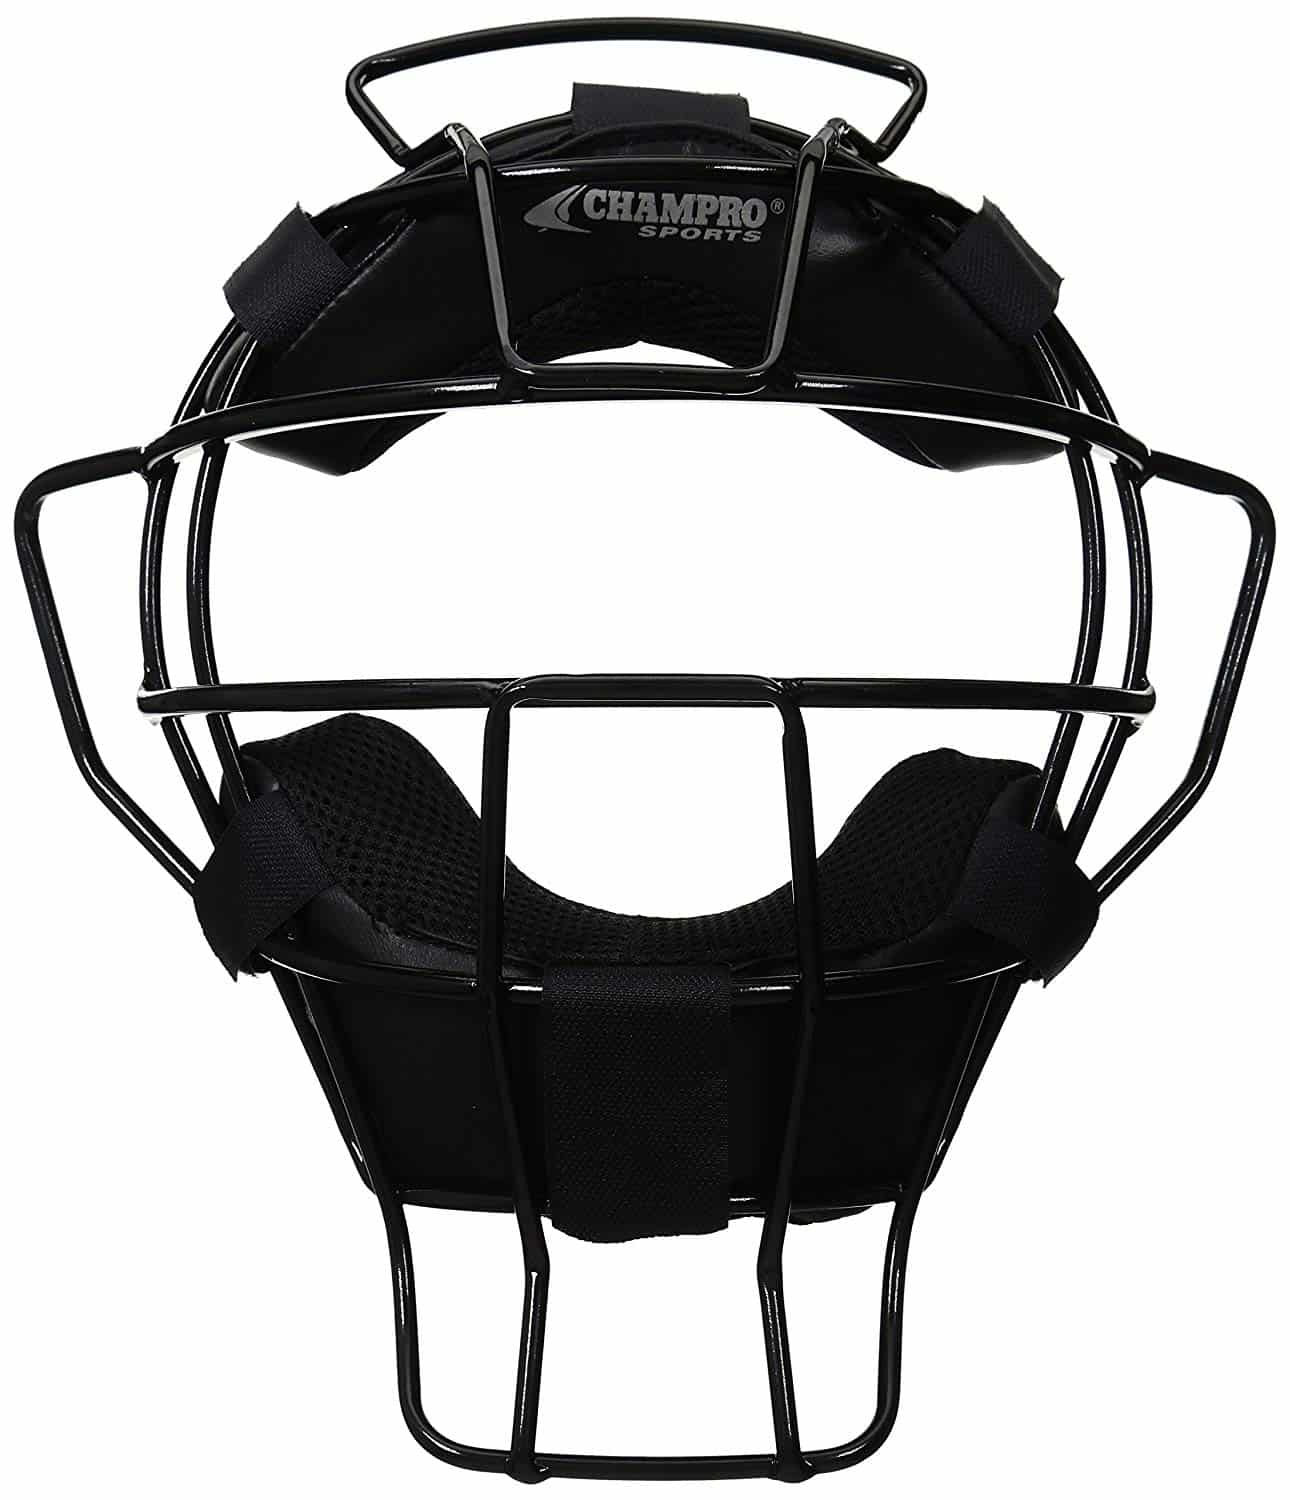 Champro Lightweight Baseball Mask